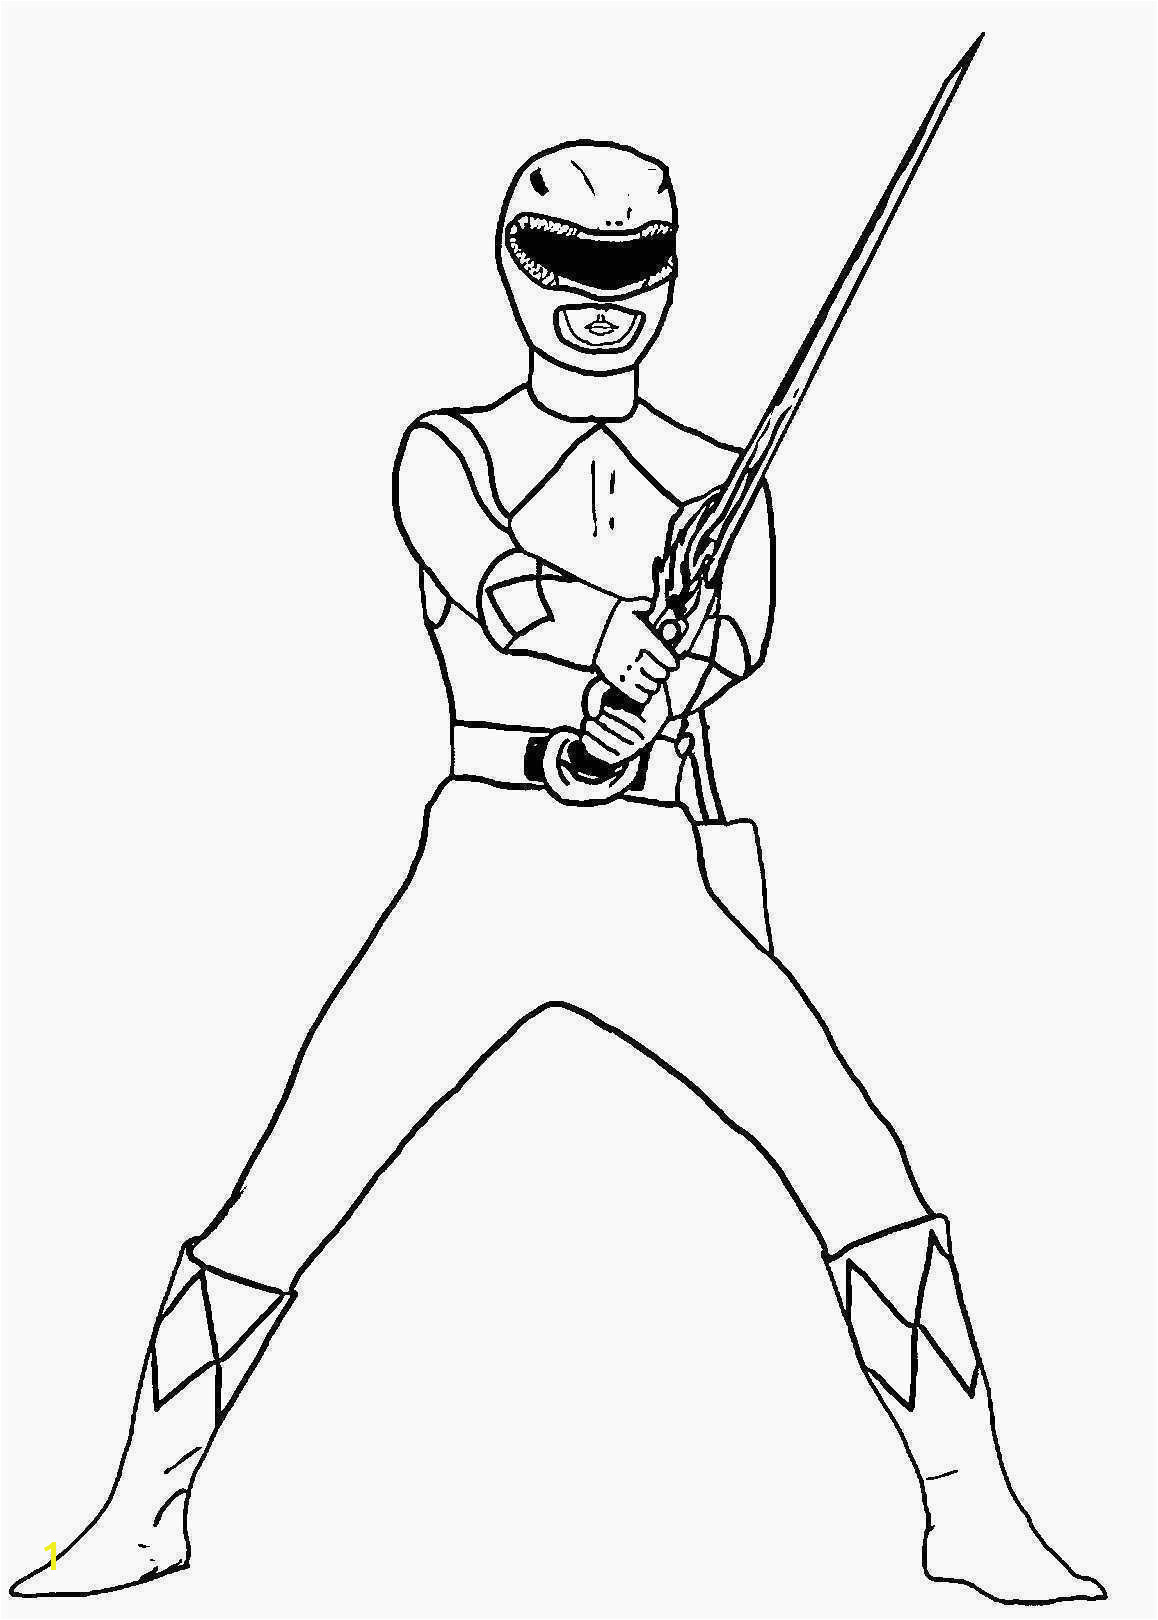 coloring pages for kids power rangers interactive coloring pages power rangers lautigamu kids rangers power coloring for pages